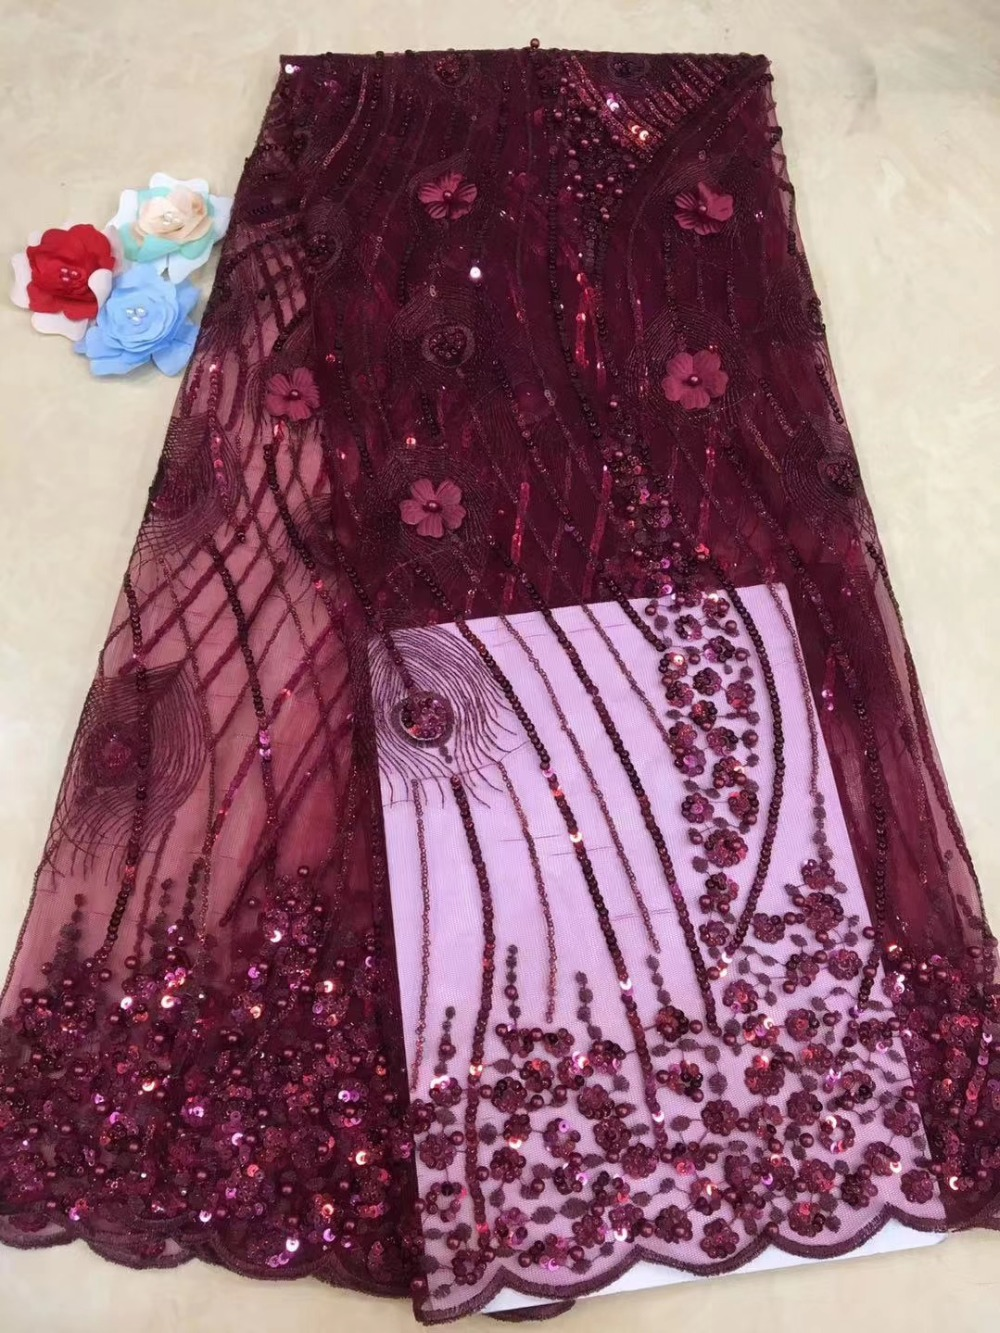 African Lace Fabric 2019 french  Lace Fabrics High Quality net Lace Embroidery French Tulle Lace Fabric For Wedding   JXINAP261African Lace Fabric 2019 french  Lace Fabrics High Quality net Lace Embroidery French Tulle Lace Fabric For Wedding   JXINAP261